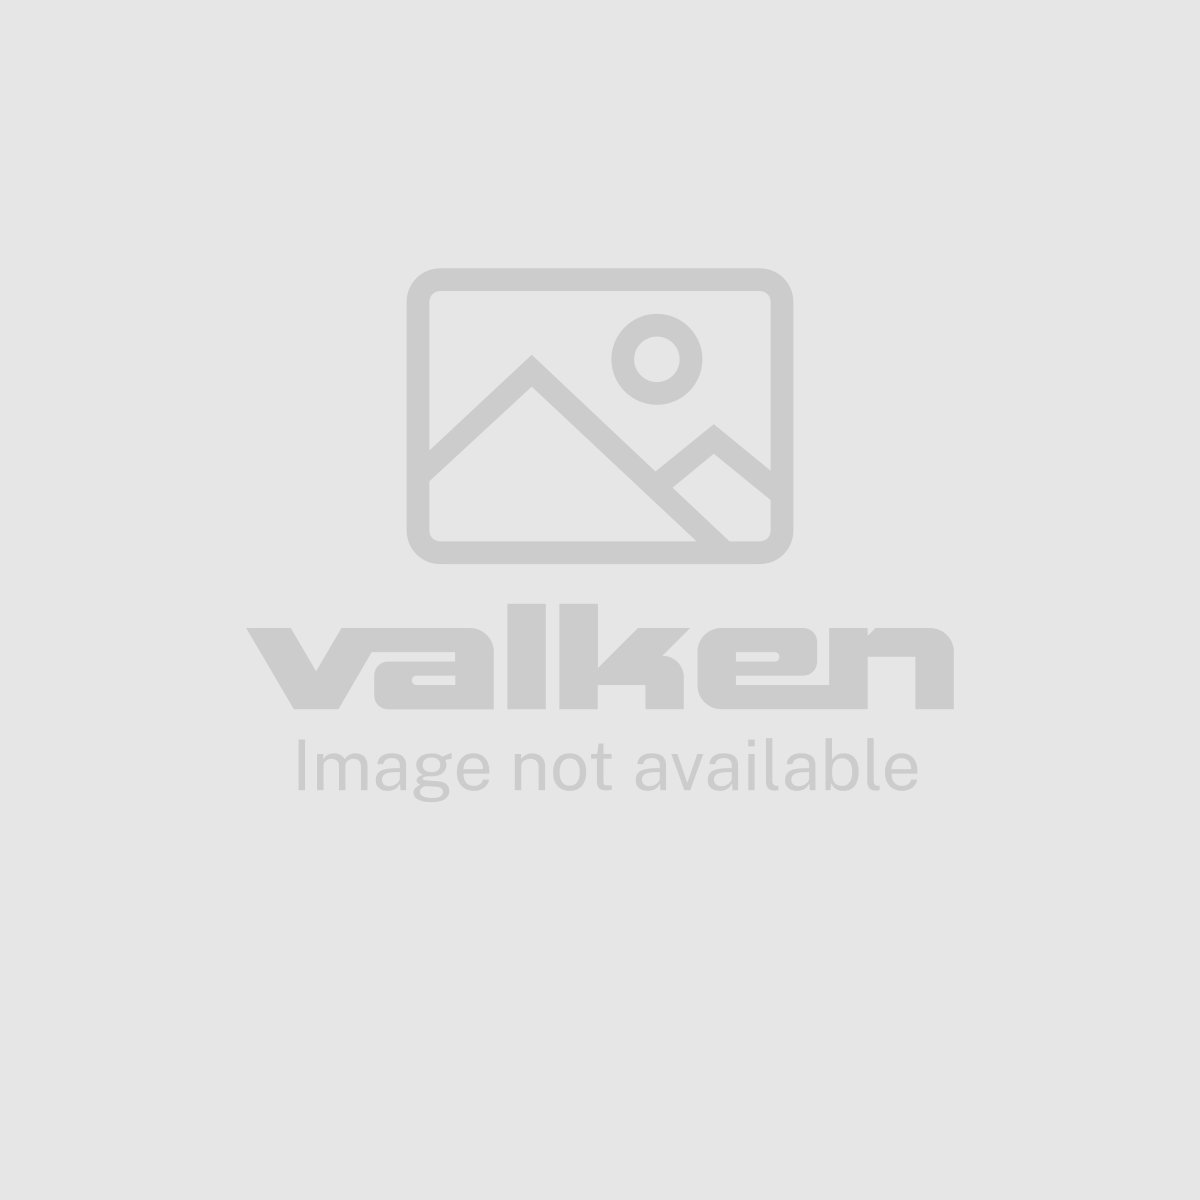 View larger image of Valken Whatever It Takes T-Shirt